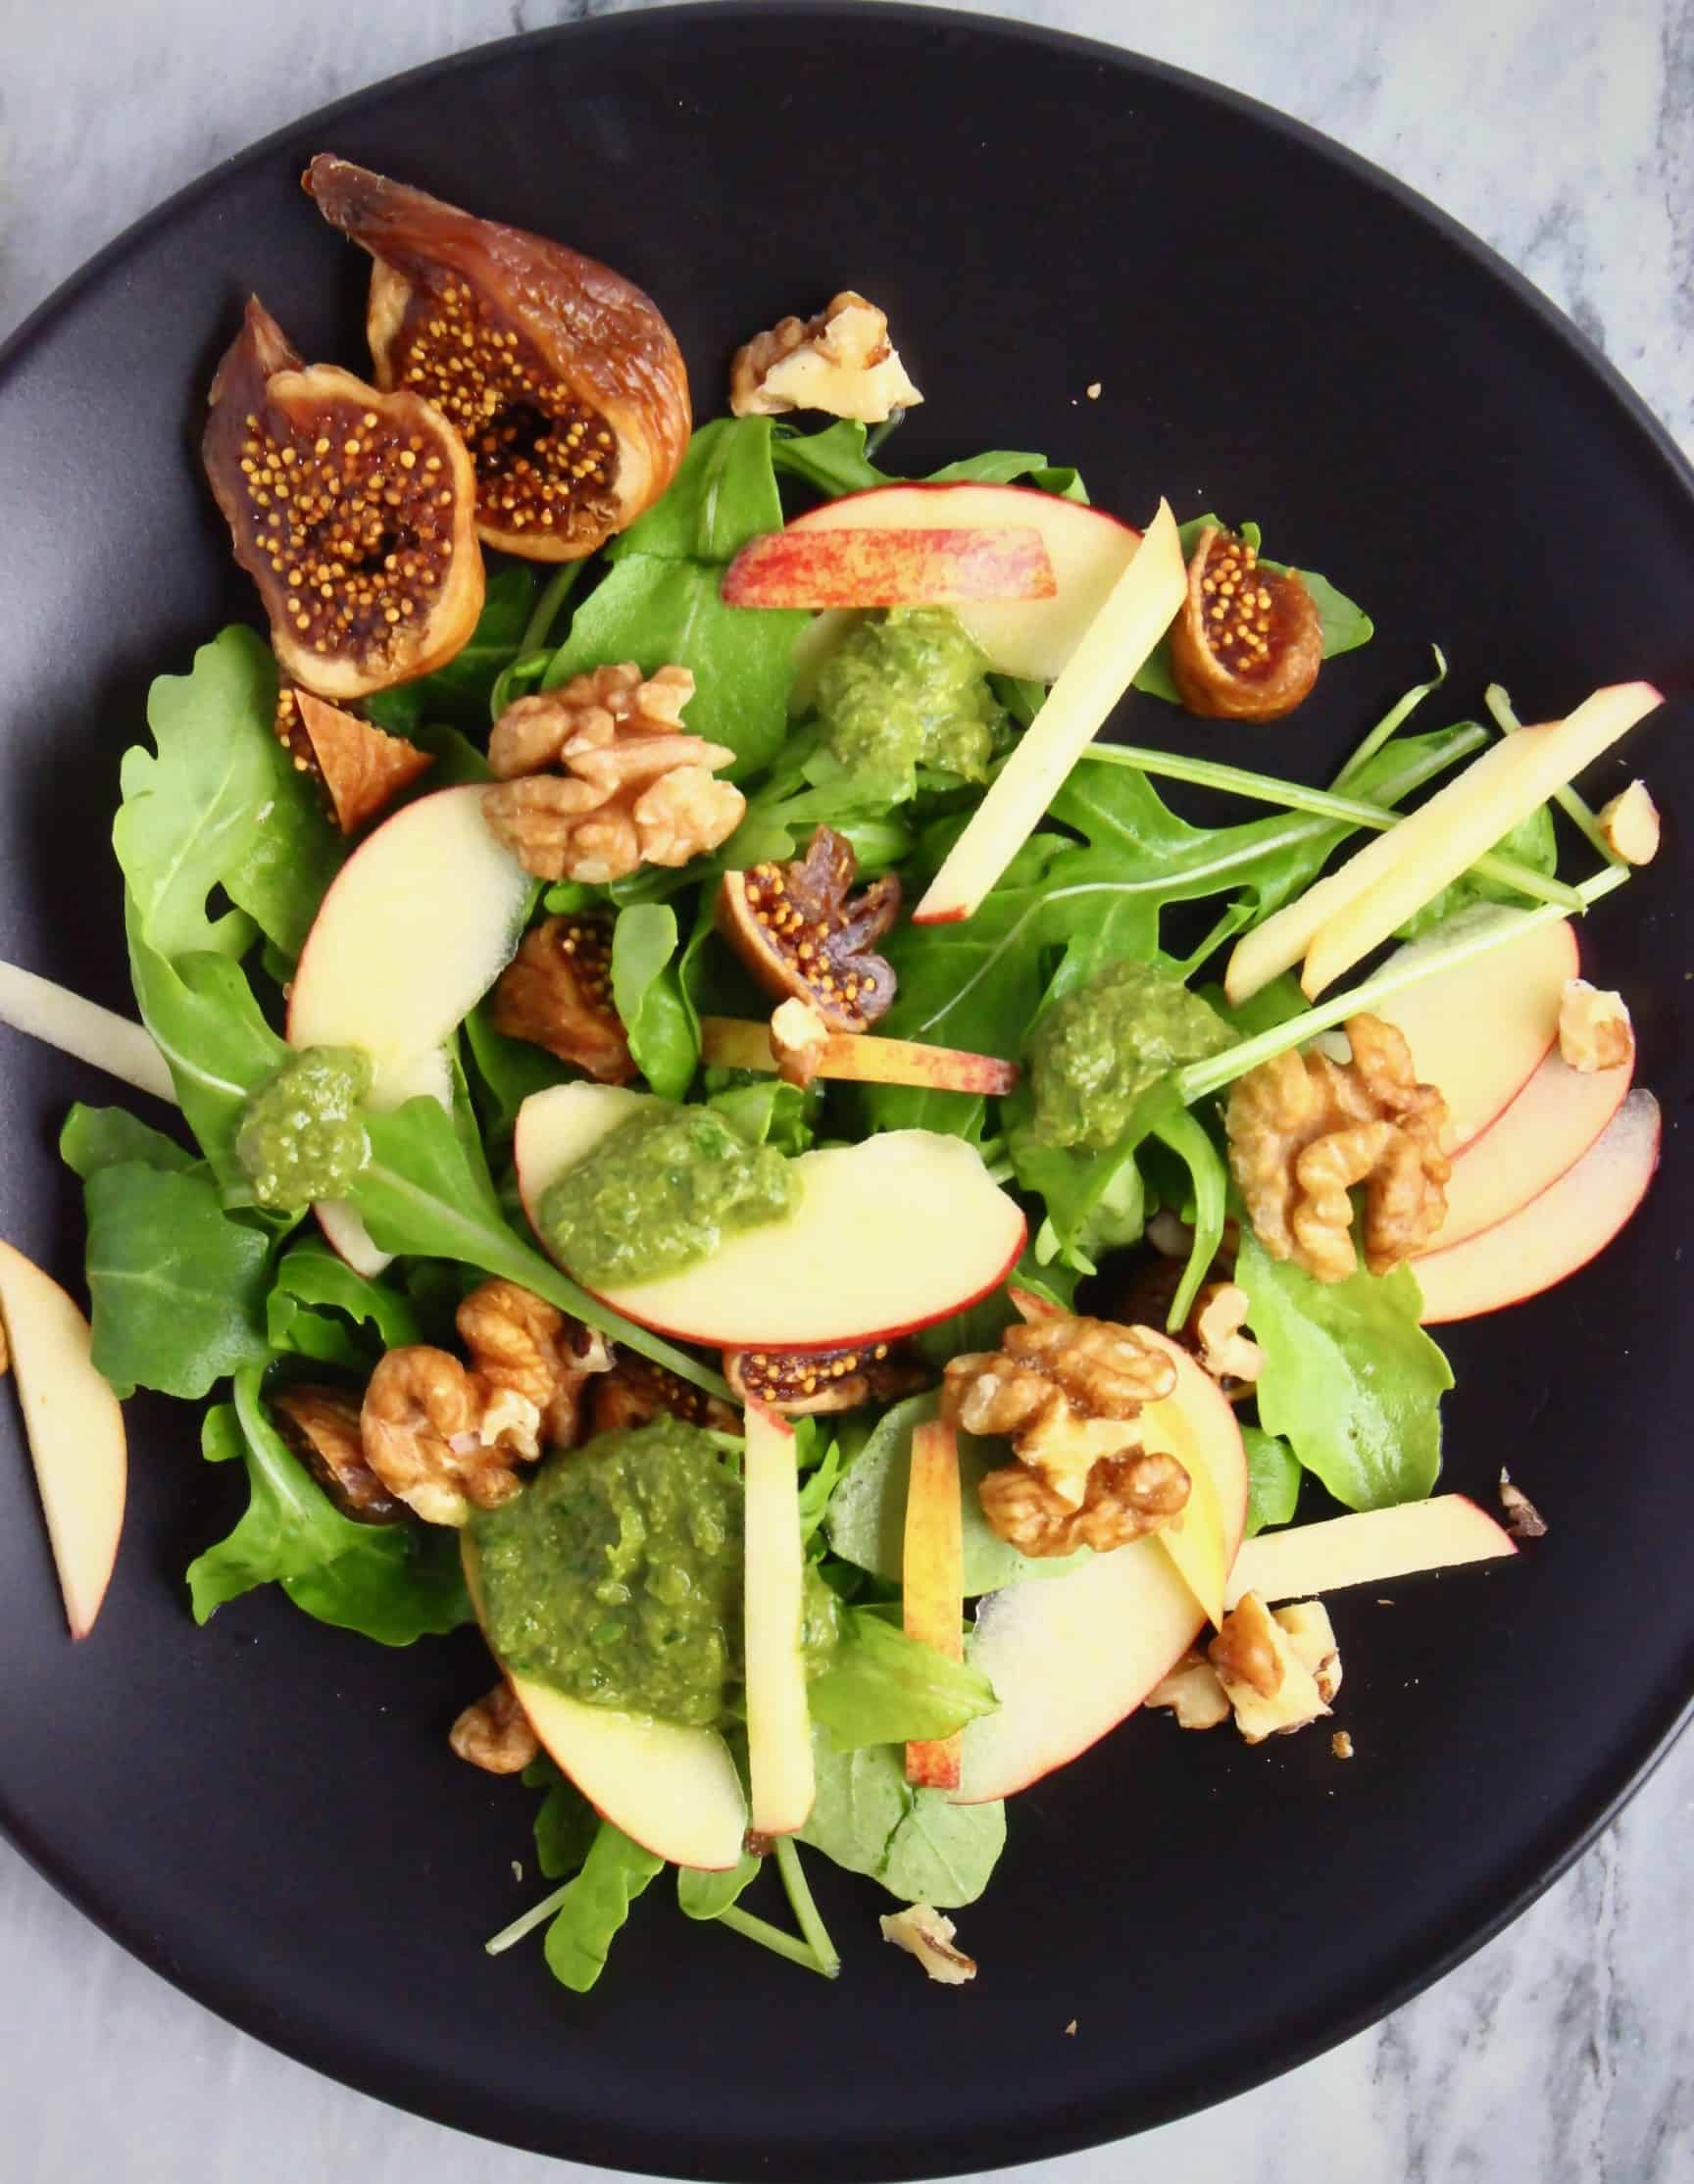 Apple slices, chopped dried figs, rocket and walnuts covered in a green pesto dressing on a black plate